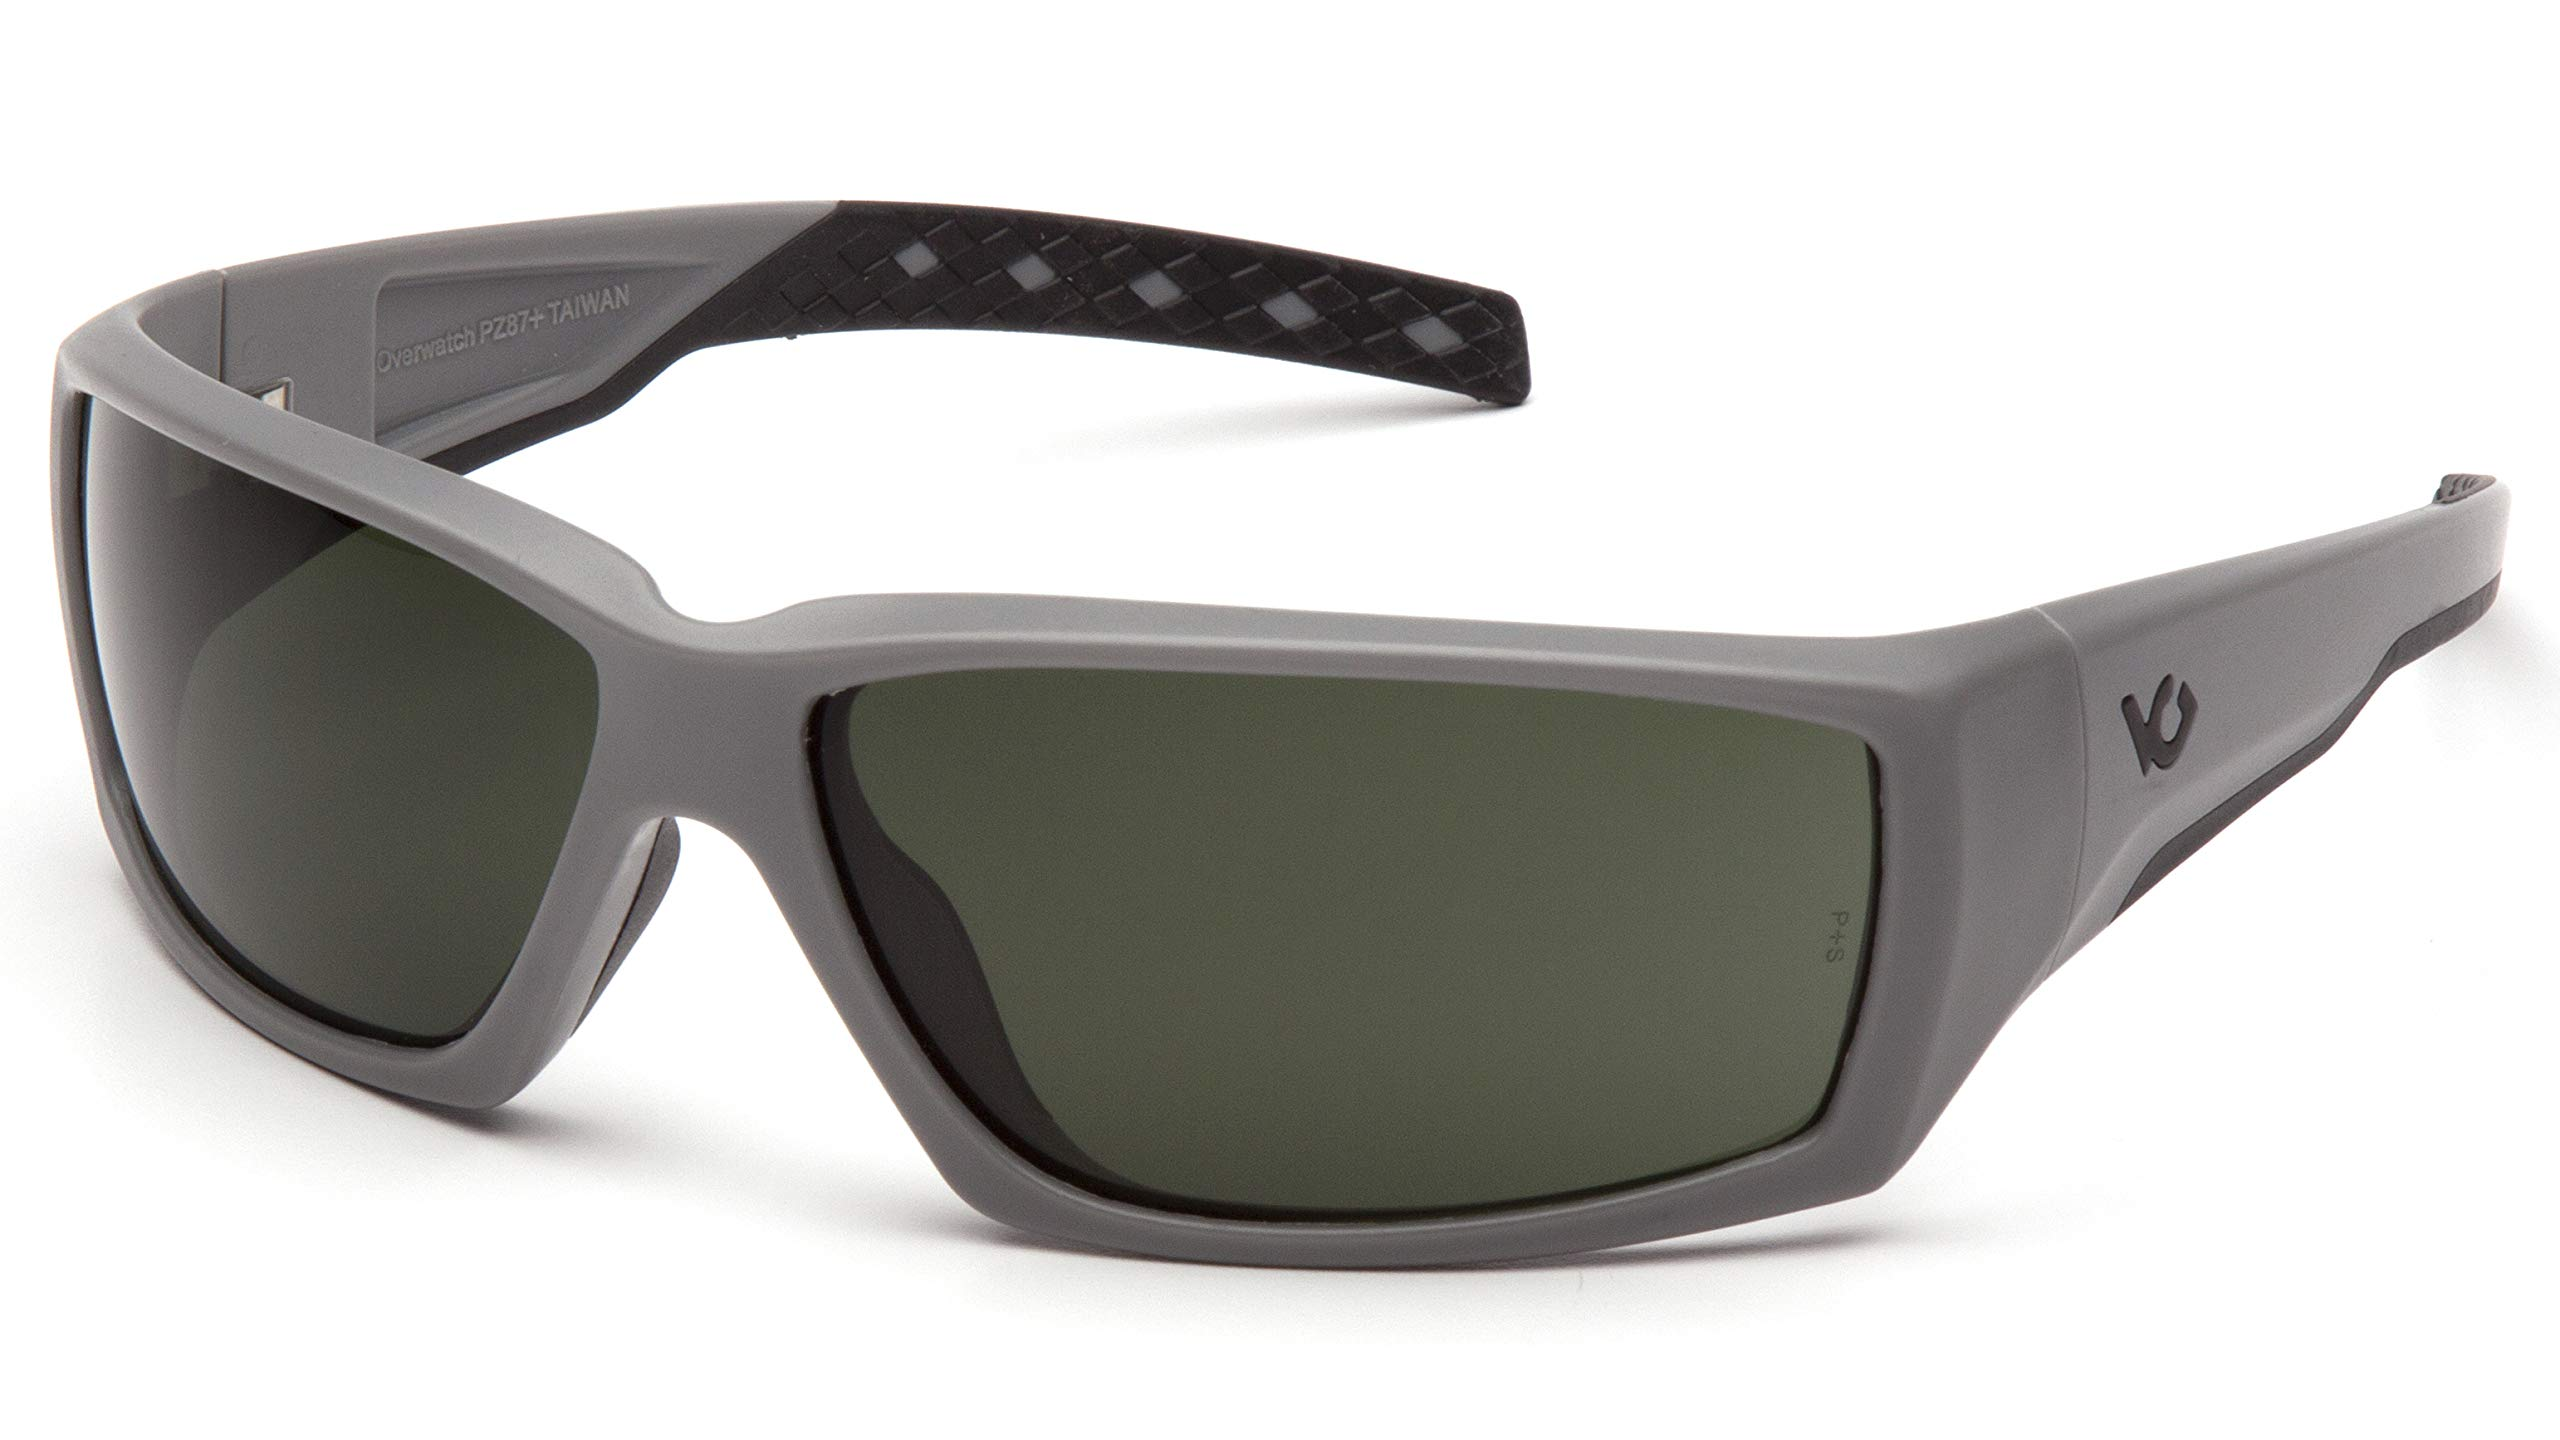 Venture Gear VGSUG722T Overwatch Tactical Sunglasses with Anti-Fog Lens, Urban Gray/Forest Gray by Venture Gear